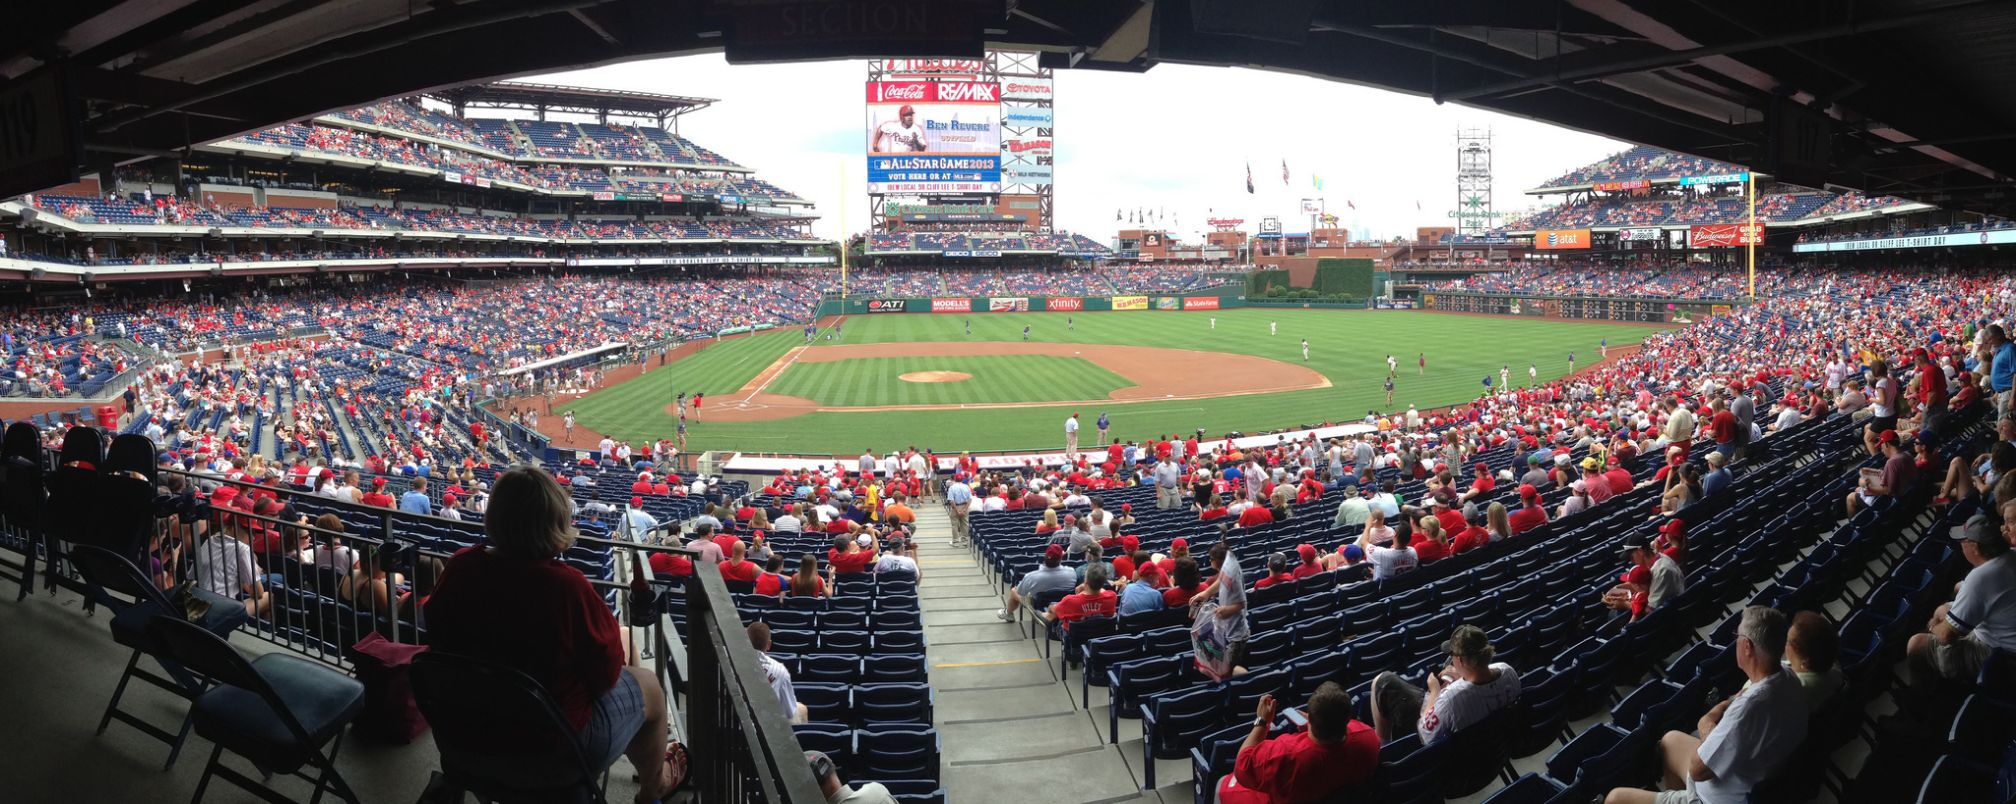 Beautiful Citizens Bank Park Seating Chart With Row Numbers